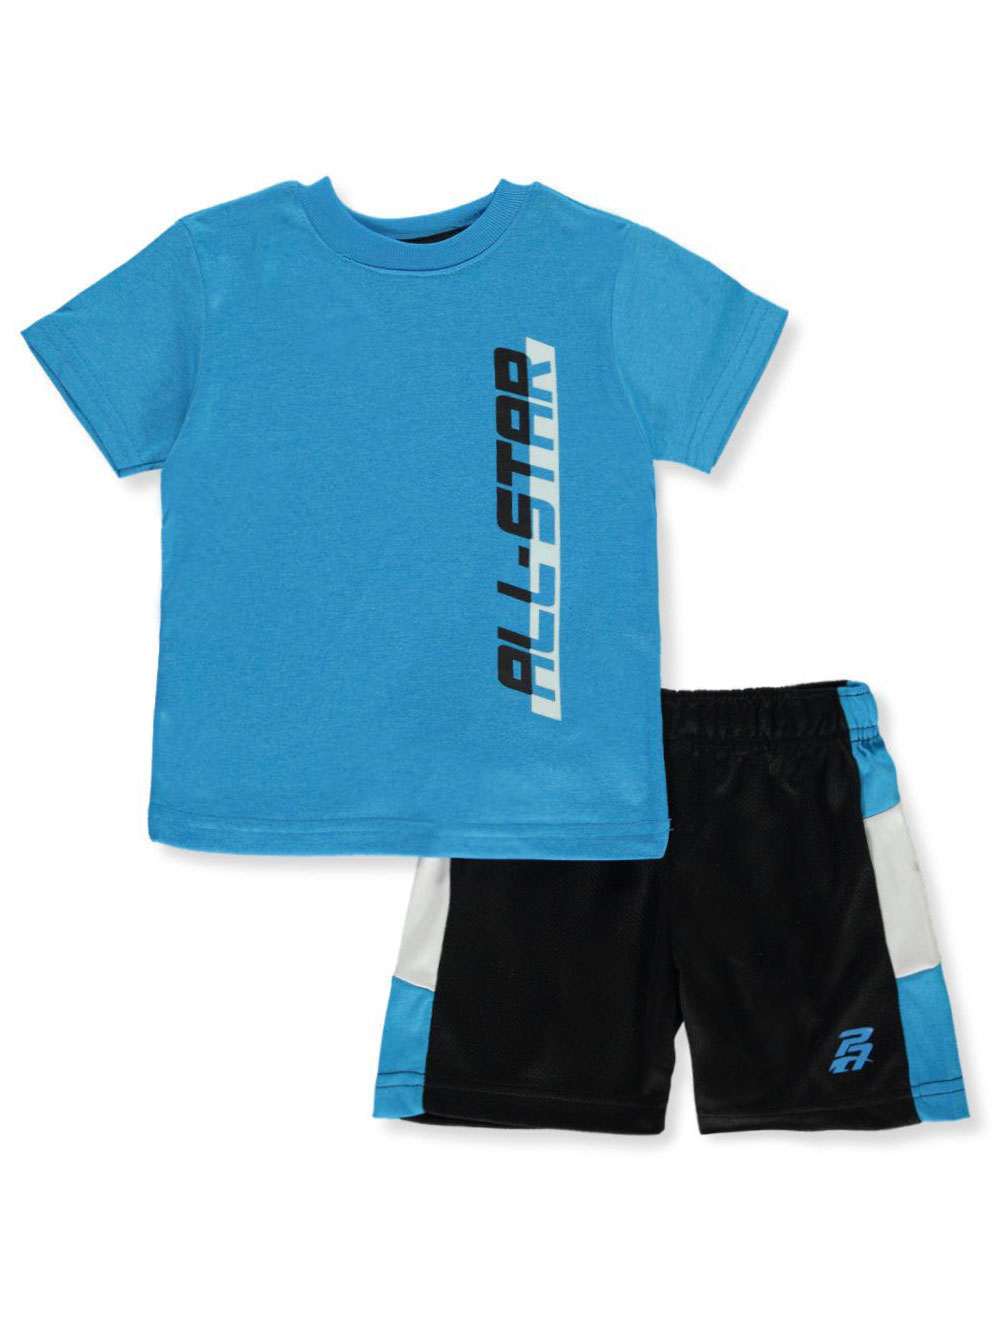 Star 2-Piece Shorts Set Outfit